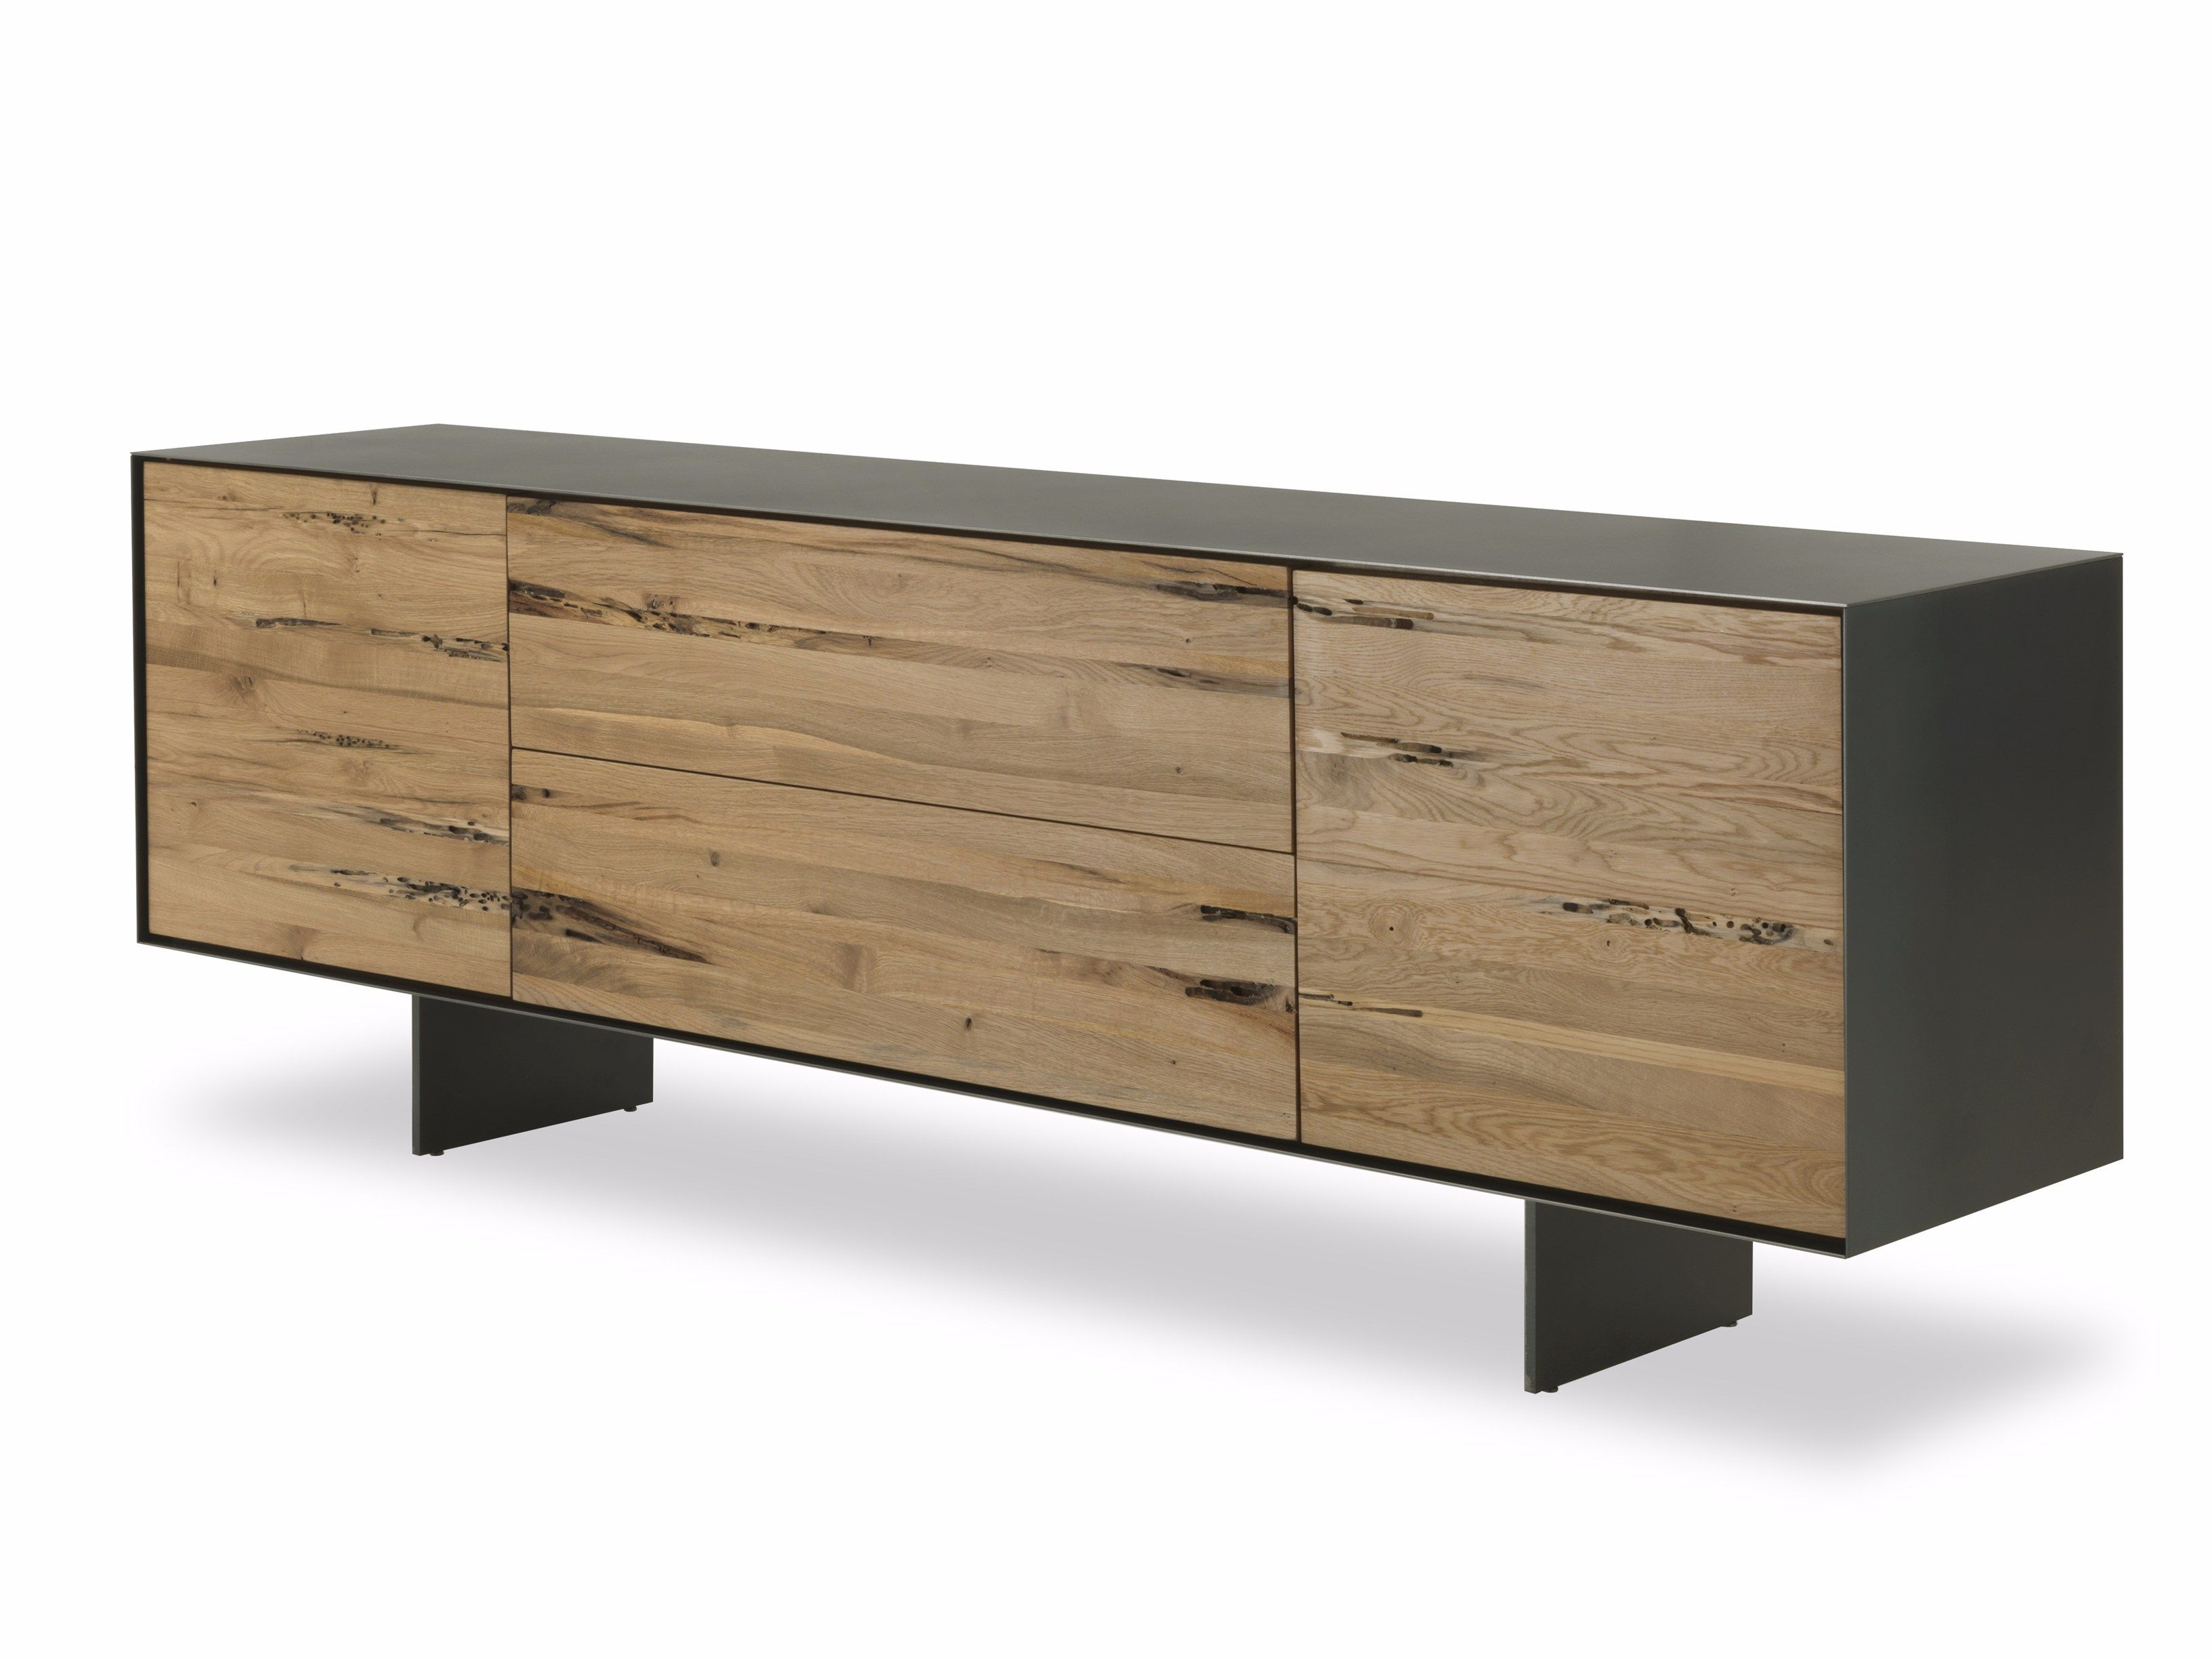 Meuble Scandinave Fly Rialto Fly Furniture Sideboard Furniture Et Tv Furniture